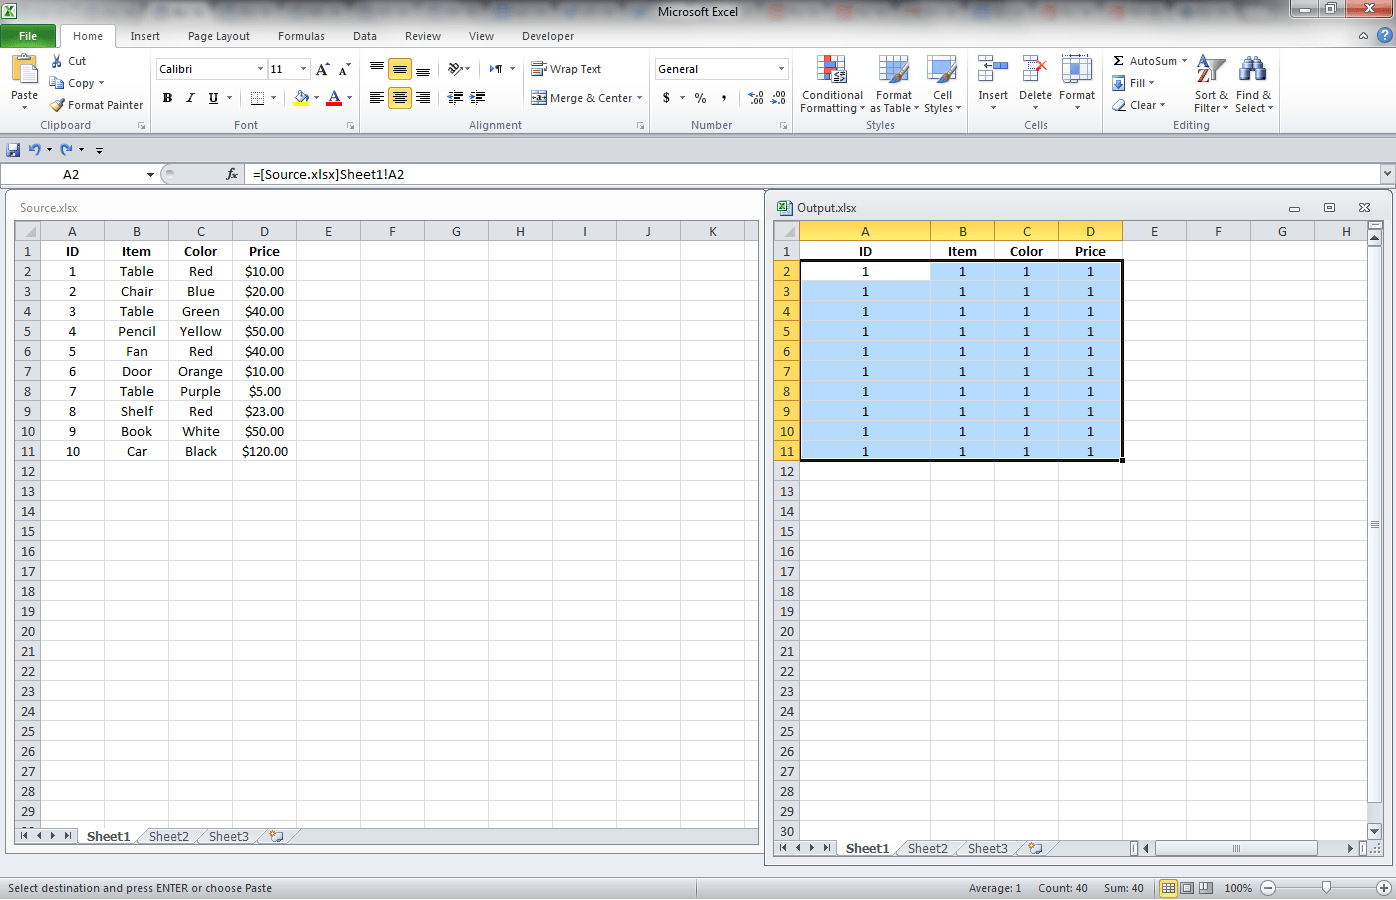 worksheet Link Data In Excel Worksheets excel getting data from another workbook through links vba and vb link multiple cells